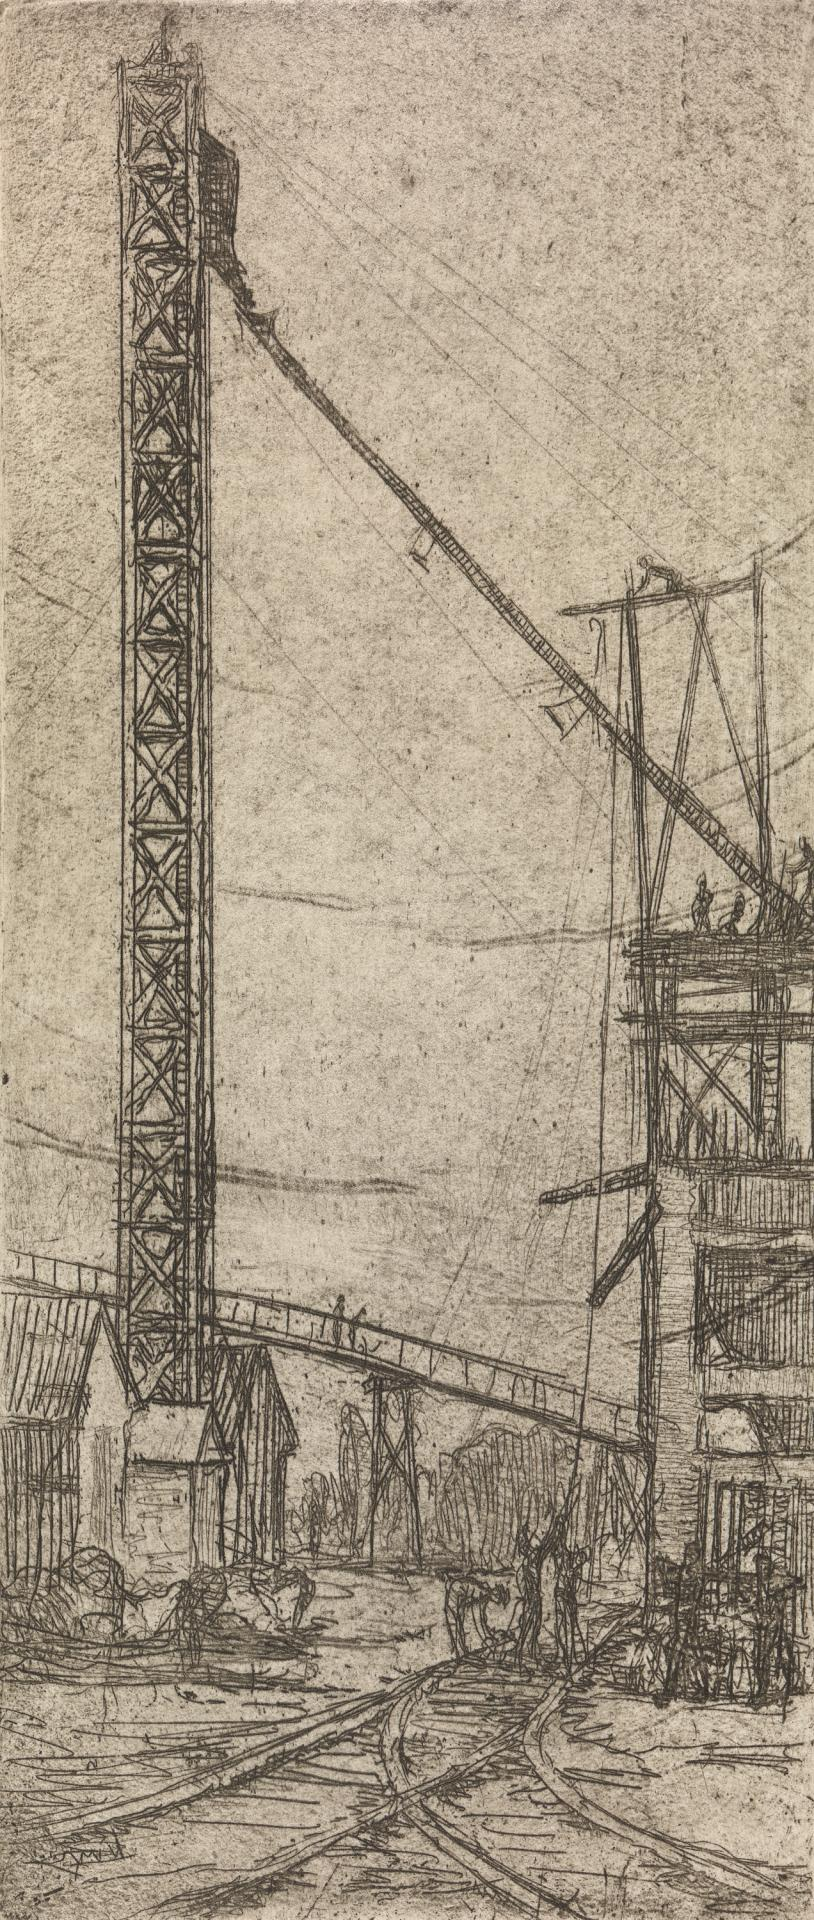 Untitled (Construction site)